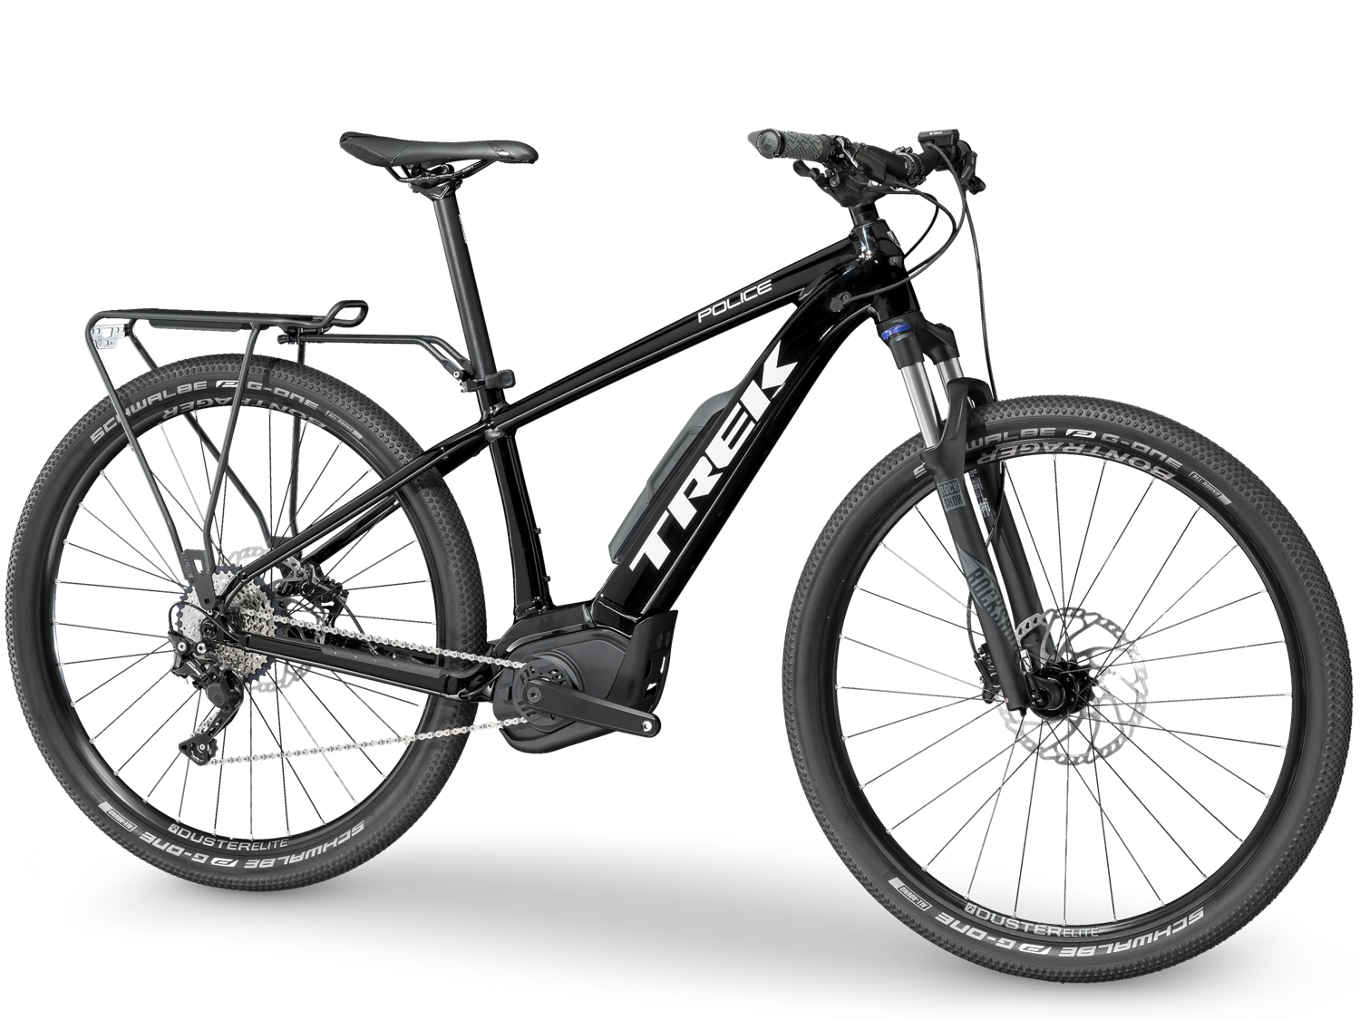 28mph S-Pedelec Street & Trail Commuter ? | Electric Bike Forum ...